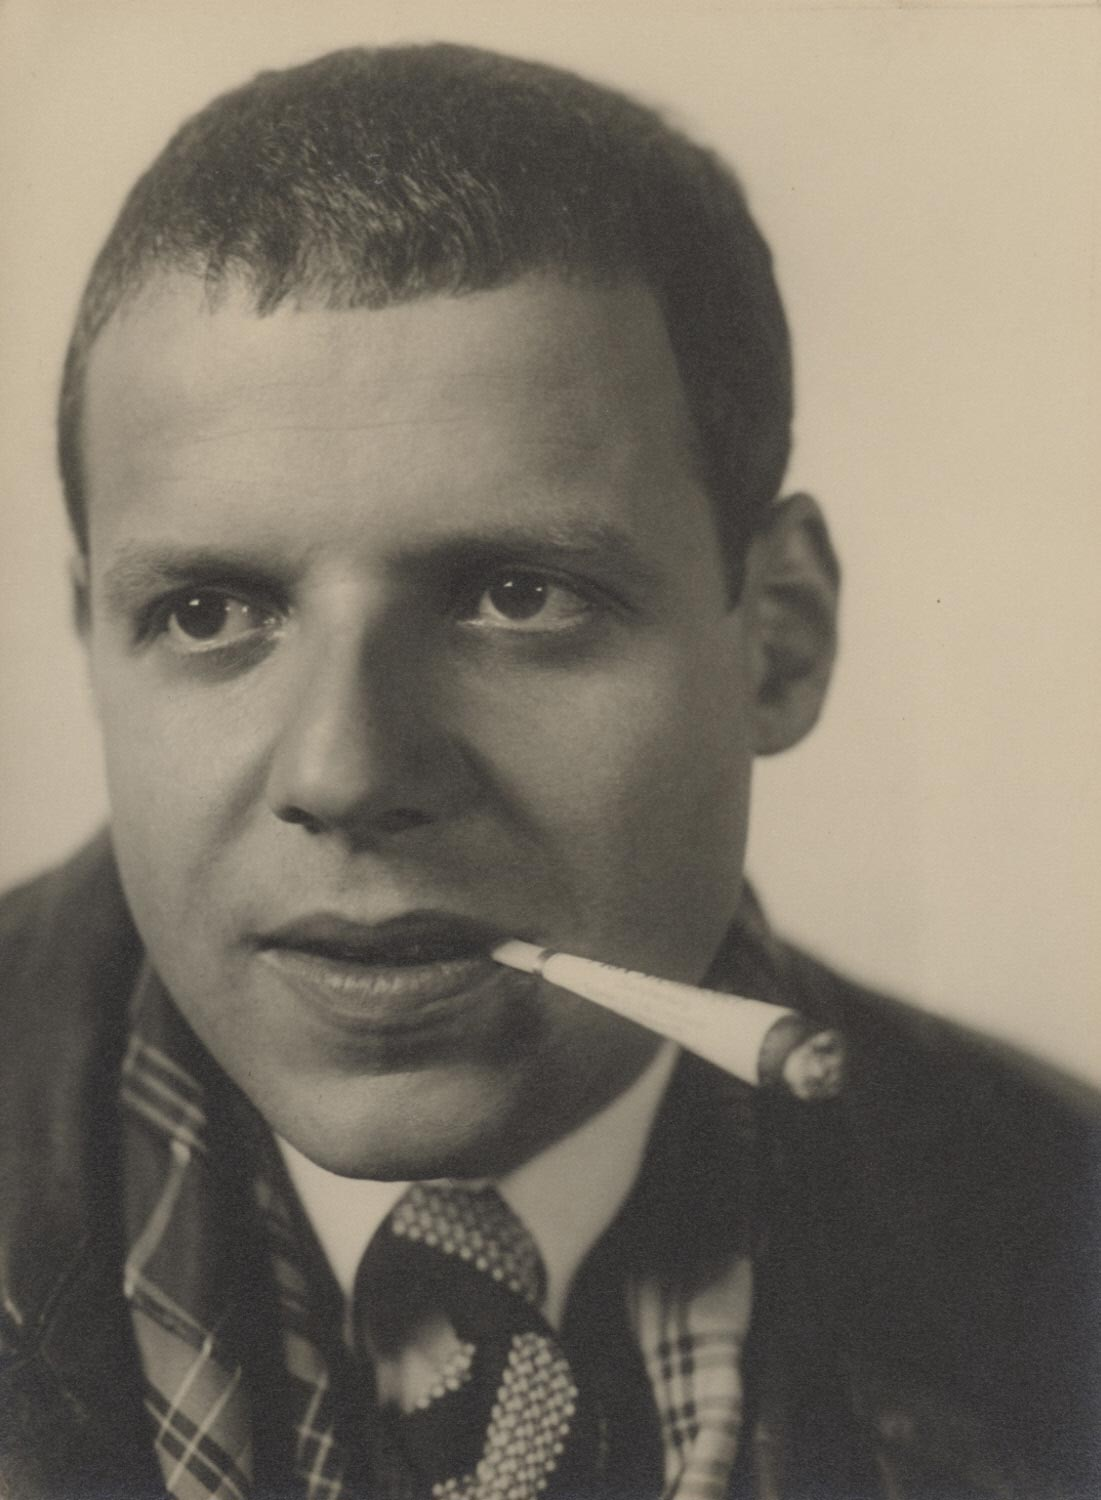 Untitled (Man with Cigarette)